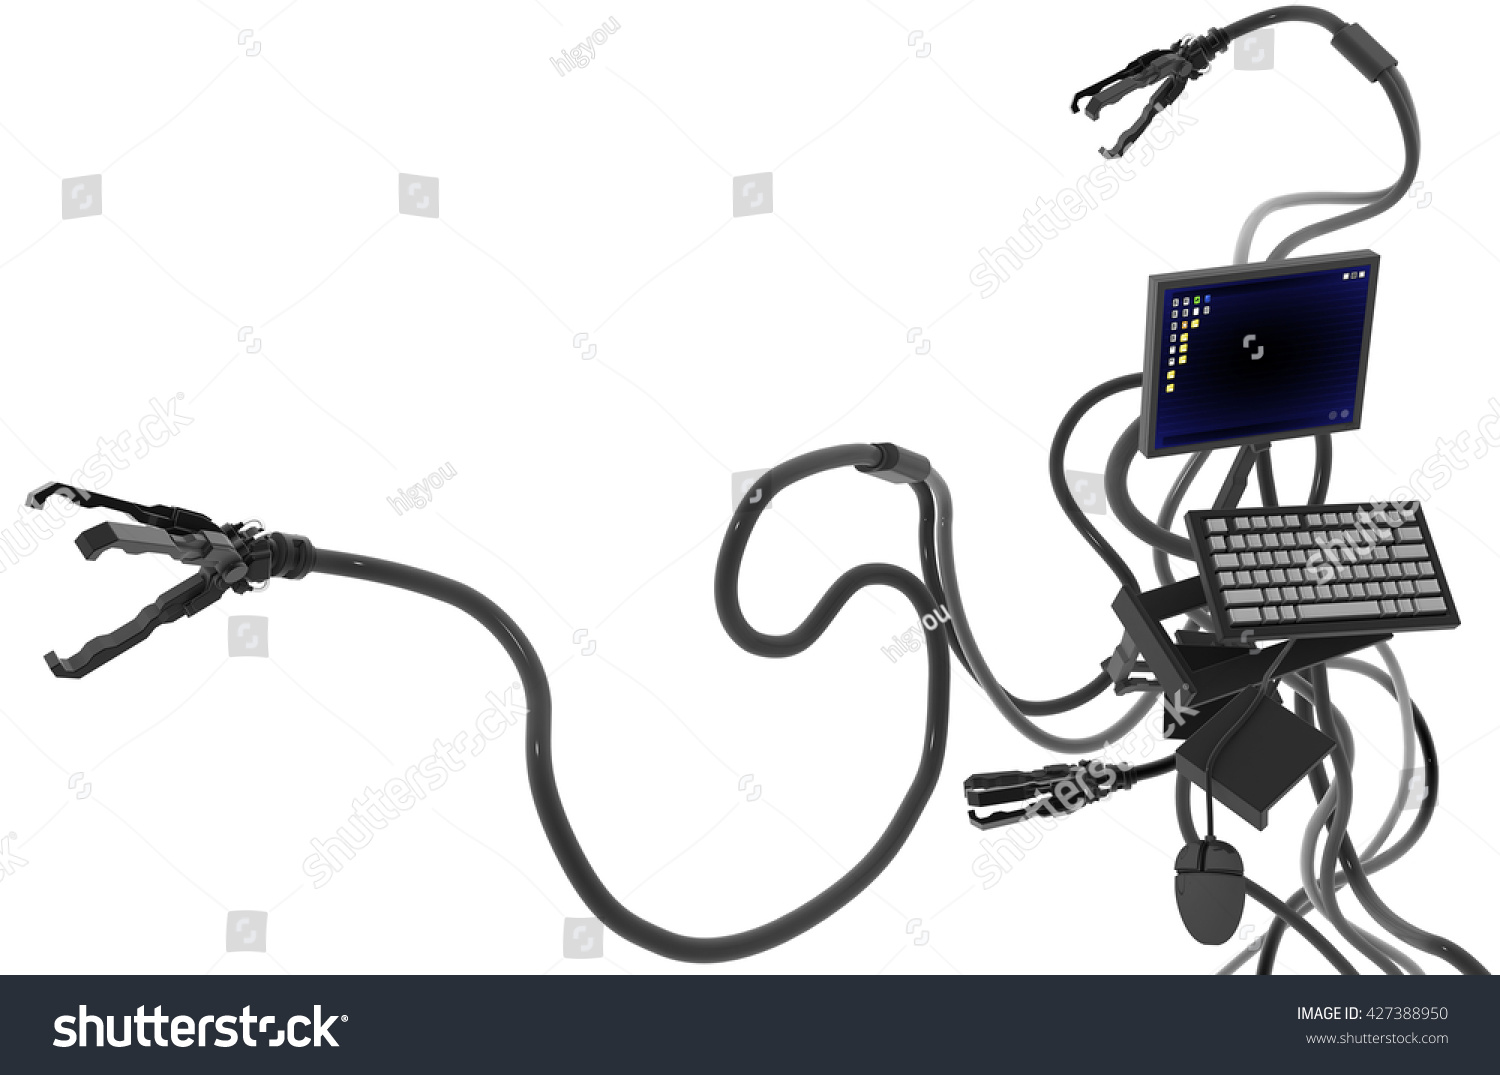 Computer Robot Electronics Technology Abstract Isolated Stock ...